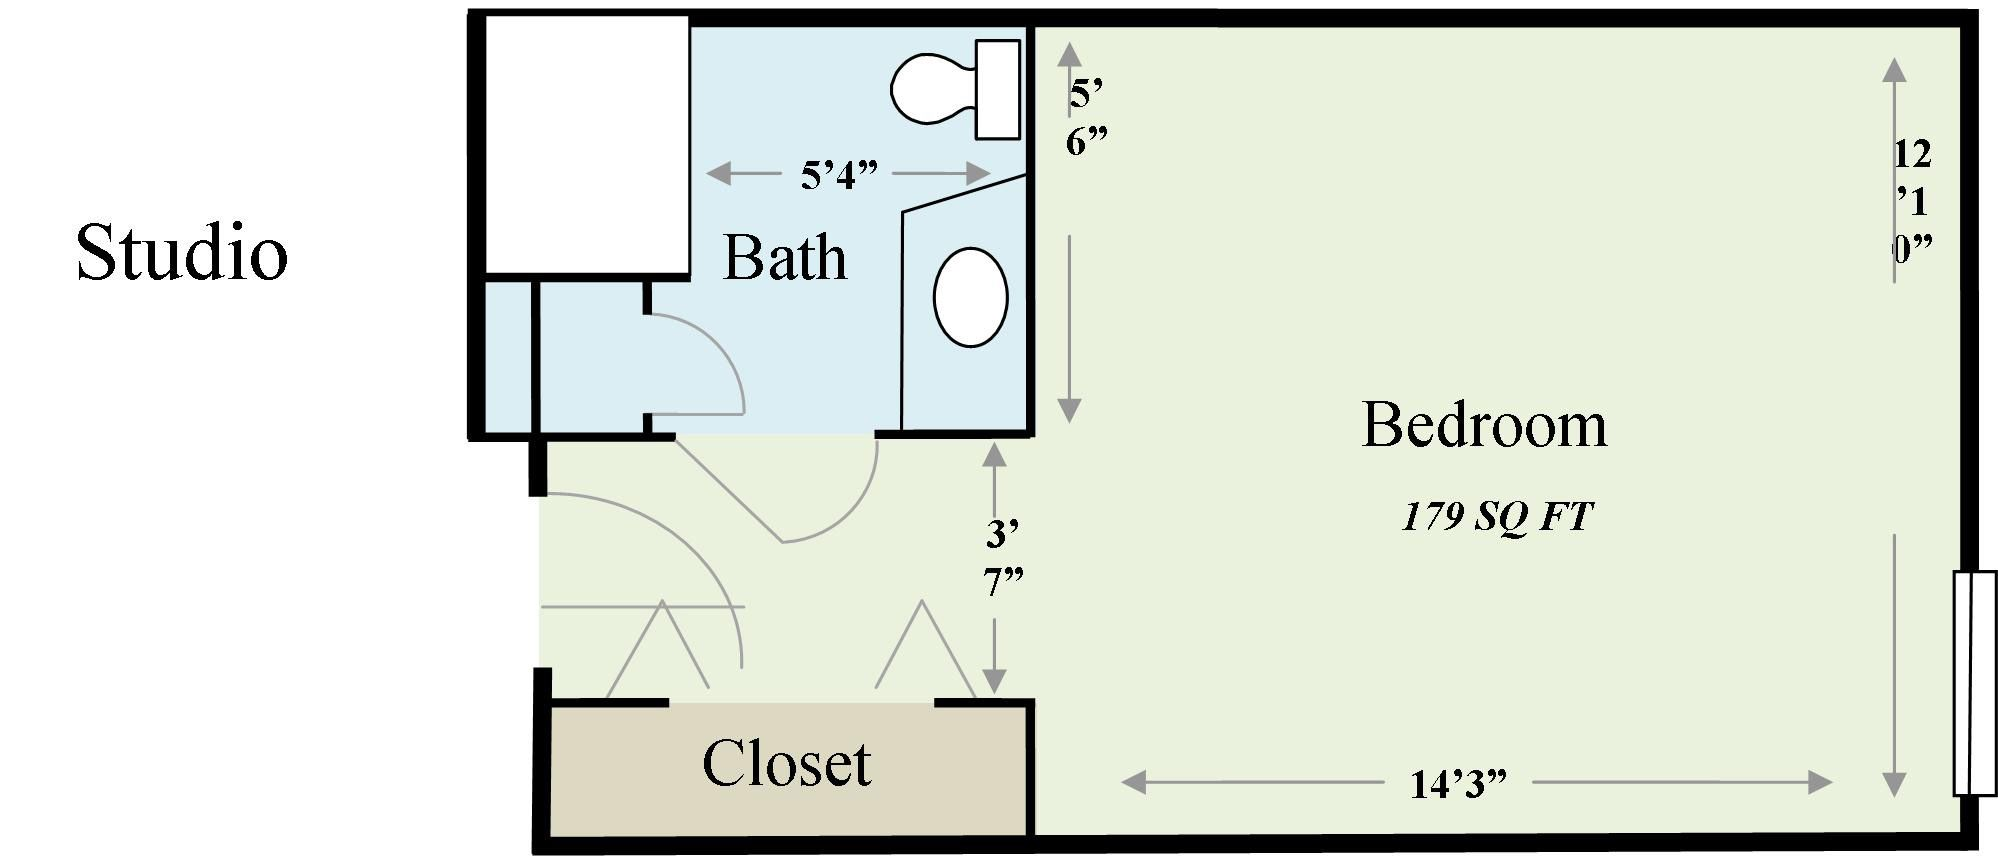 200 Sq Ft Tiny House Floor Plans Wesley Gardens Sample